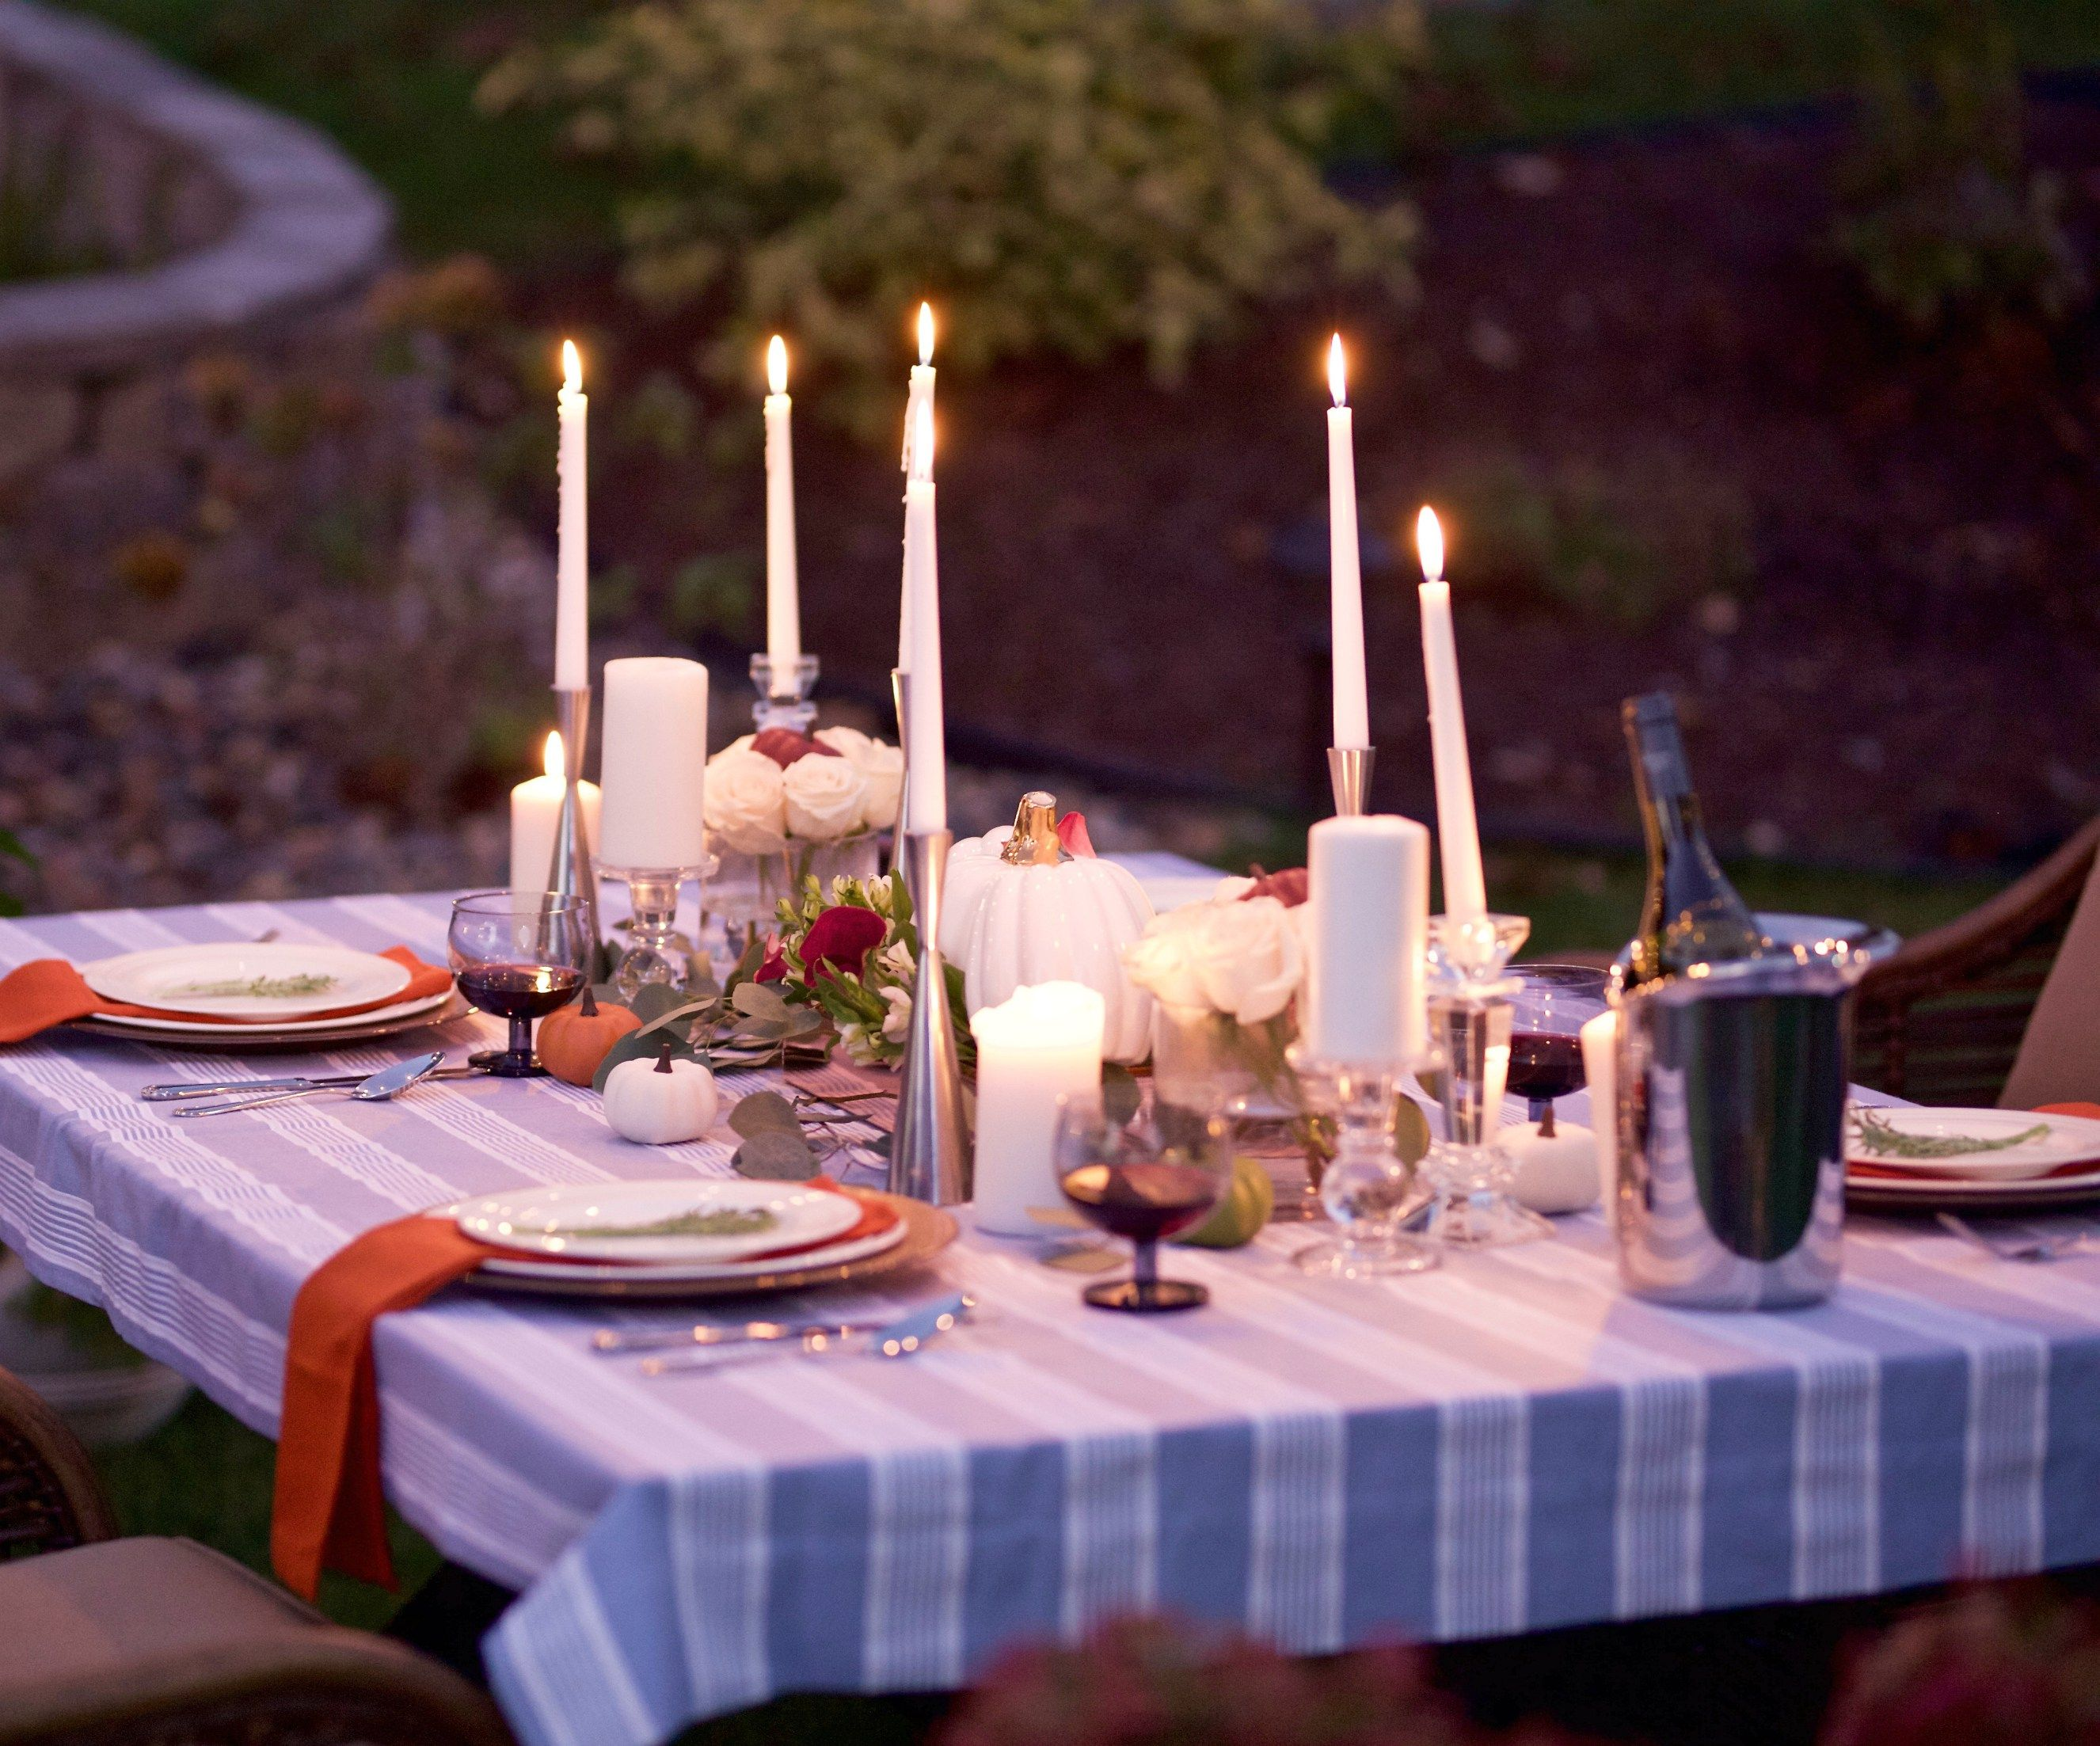 DINNER BY CANDLELIGHT IN THE GARDEN | Victoria Lambert